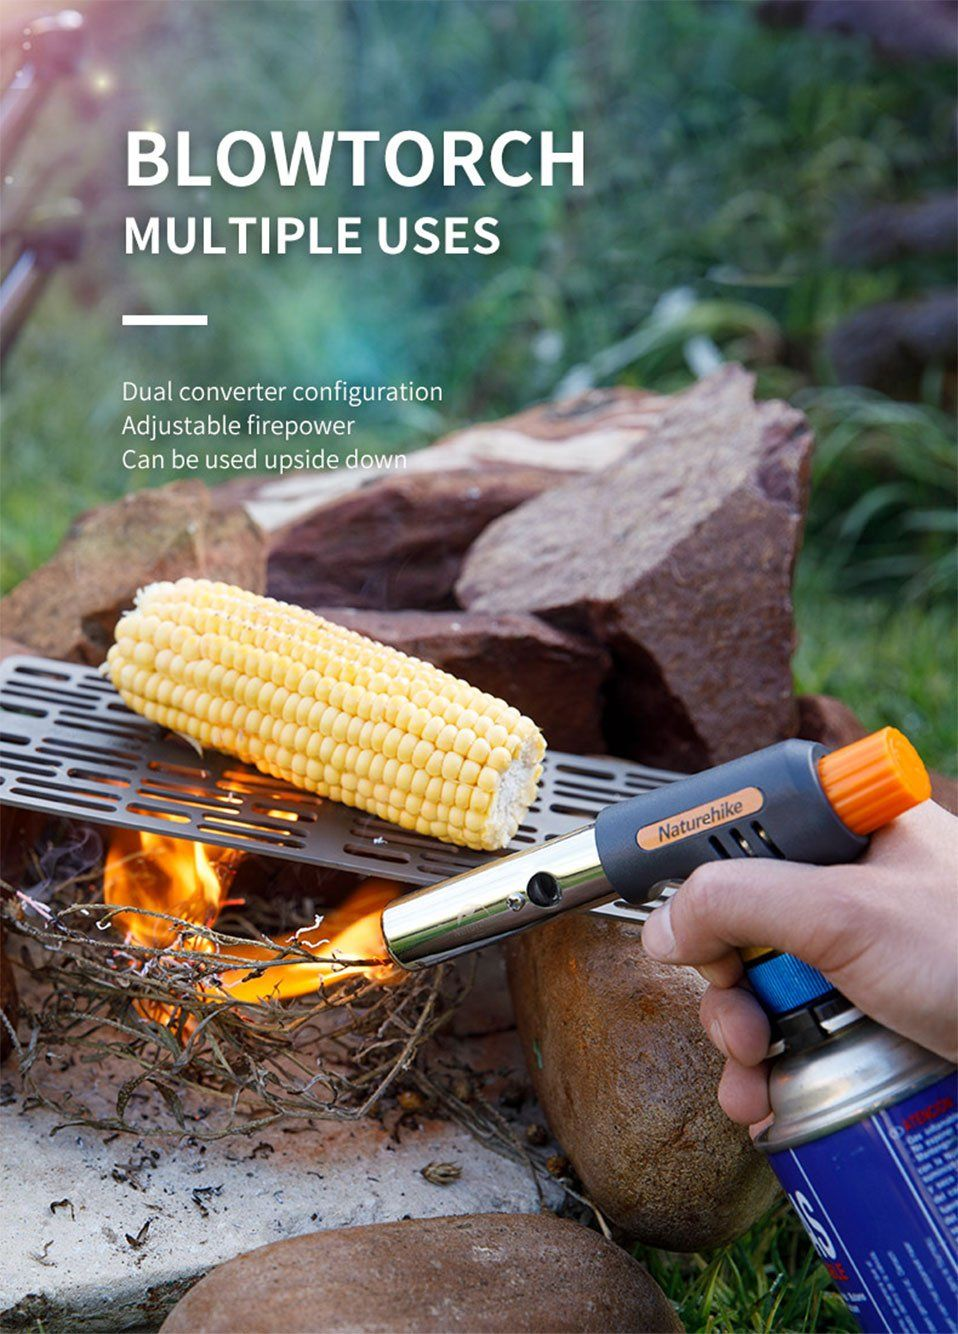 Naturehike Clip-on Type Spiral Type Air Gun Igniter For Baking Outdoor Picnic Household Fire Gun Airbrush Brand Name: NaturehikeWith Ignition Device or Not: IncludedDisposable: NoModel: NH19CJ005Fuel: ButanePiece Number Of Wind Deflector: No wind shieldApplicable Seasoning Type: Liquid SeasoningMaterial: MetalStructure: SPLITType: airbrushNumber of Users: 3-5Application Method: ManualUsage Condition: Normal OutdoorColor: Orange with grayAdapter: Clip-on Type Spiral TypeInstructions: InvertableFi